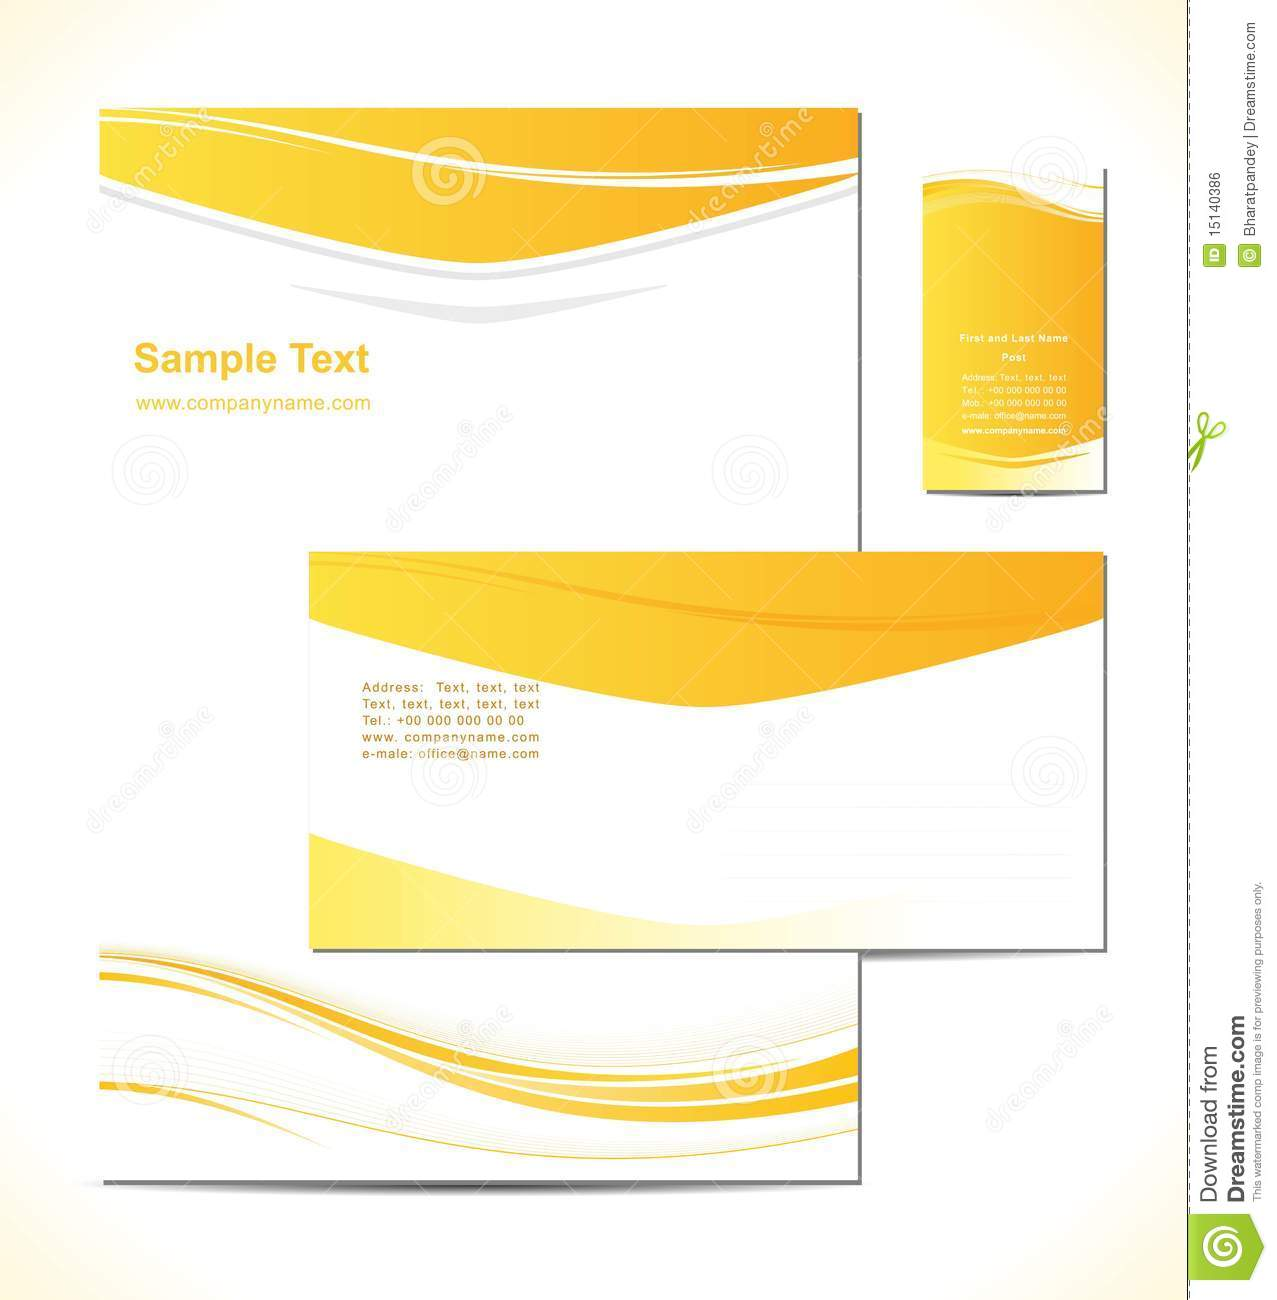 Vector illustresion is a letterhead template desig stock vector vector illustresion is a letterhead template desig spiritdancerdesigns Image collections